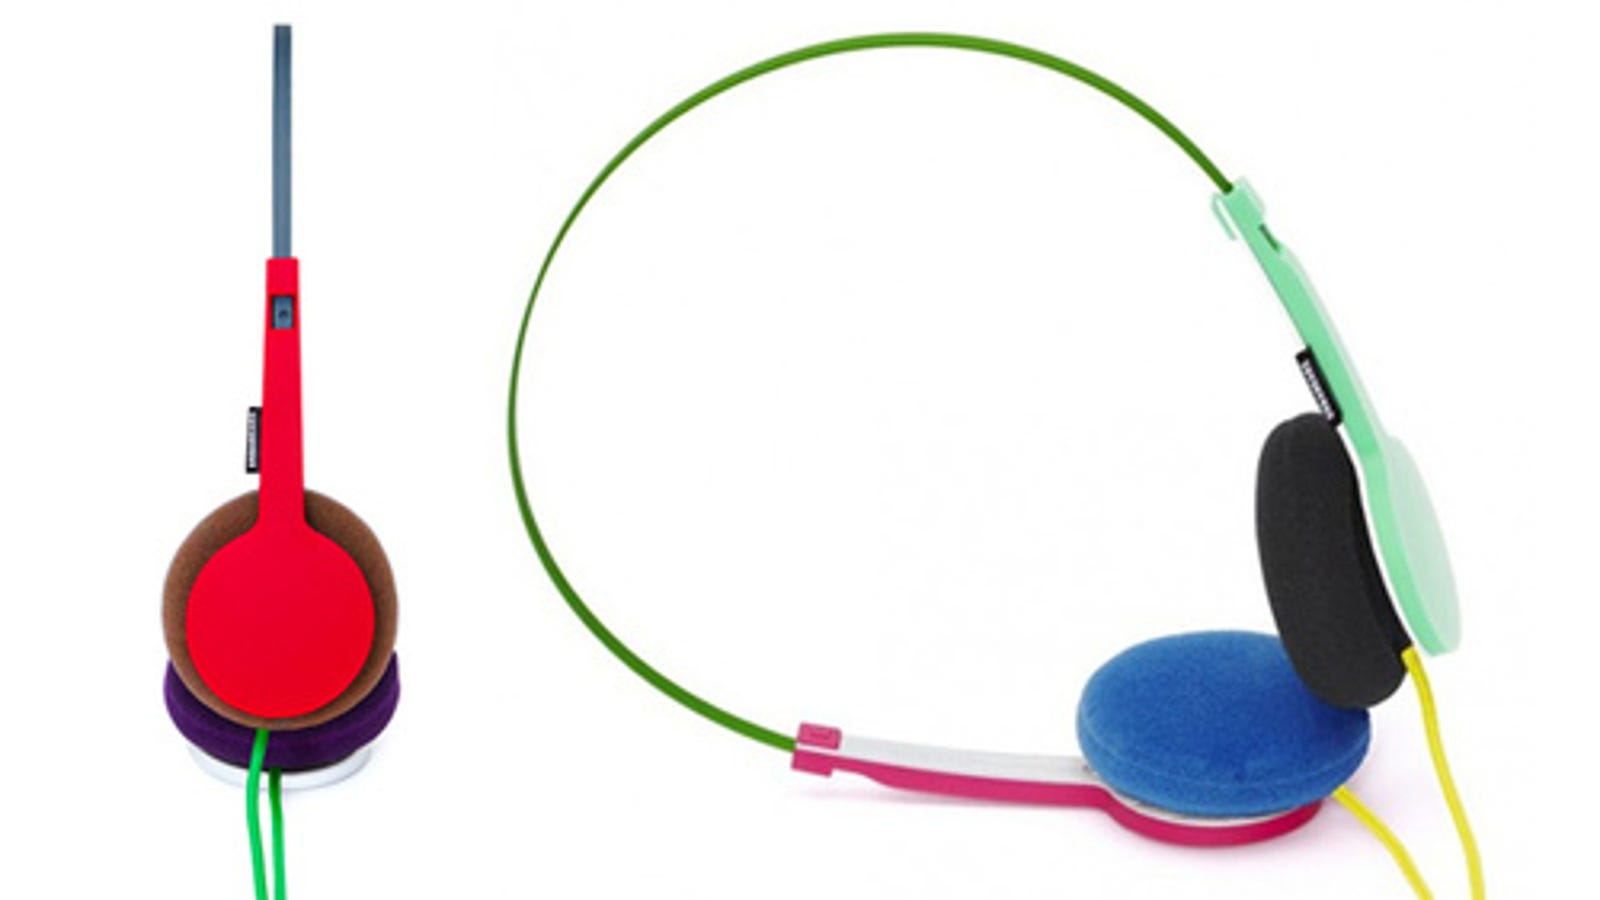 samsung galaxy earbuds akg - The '80s Headphones Lucky-Dip